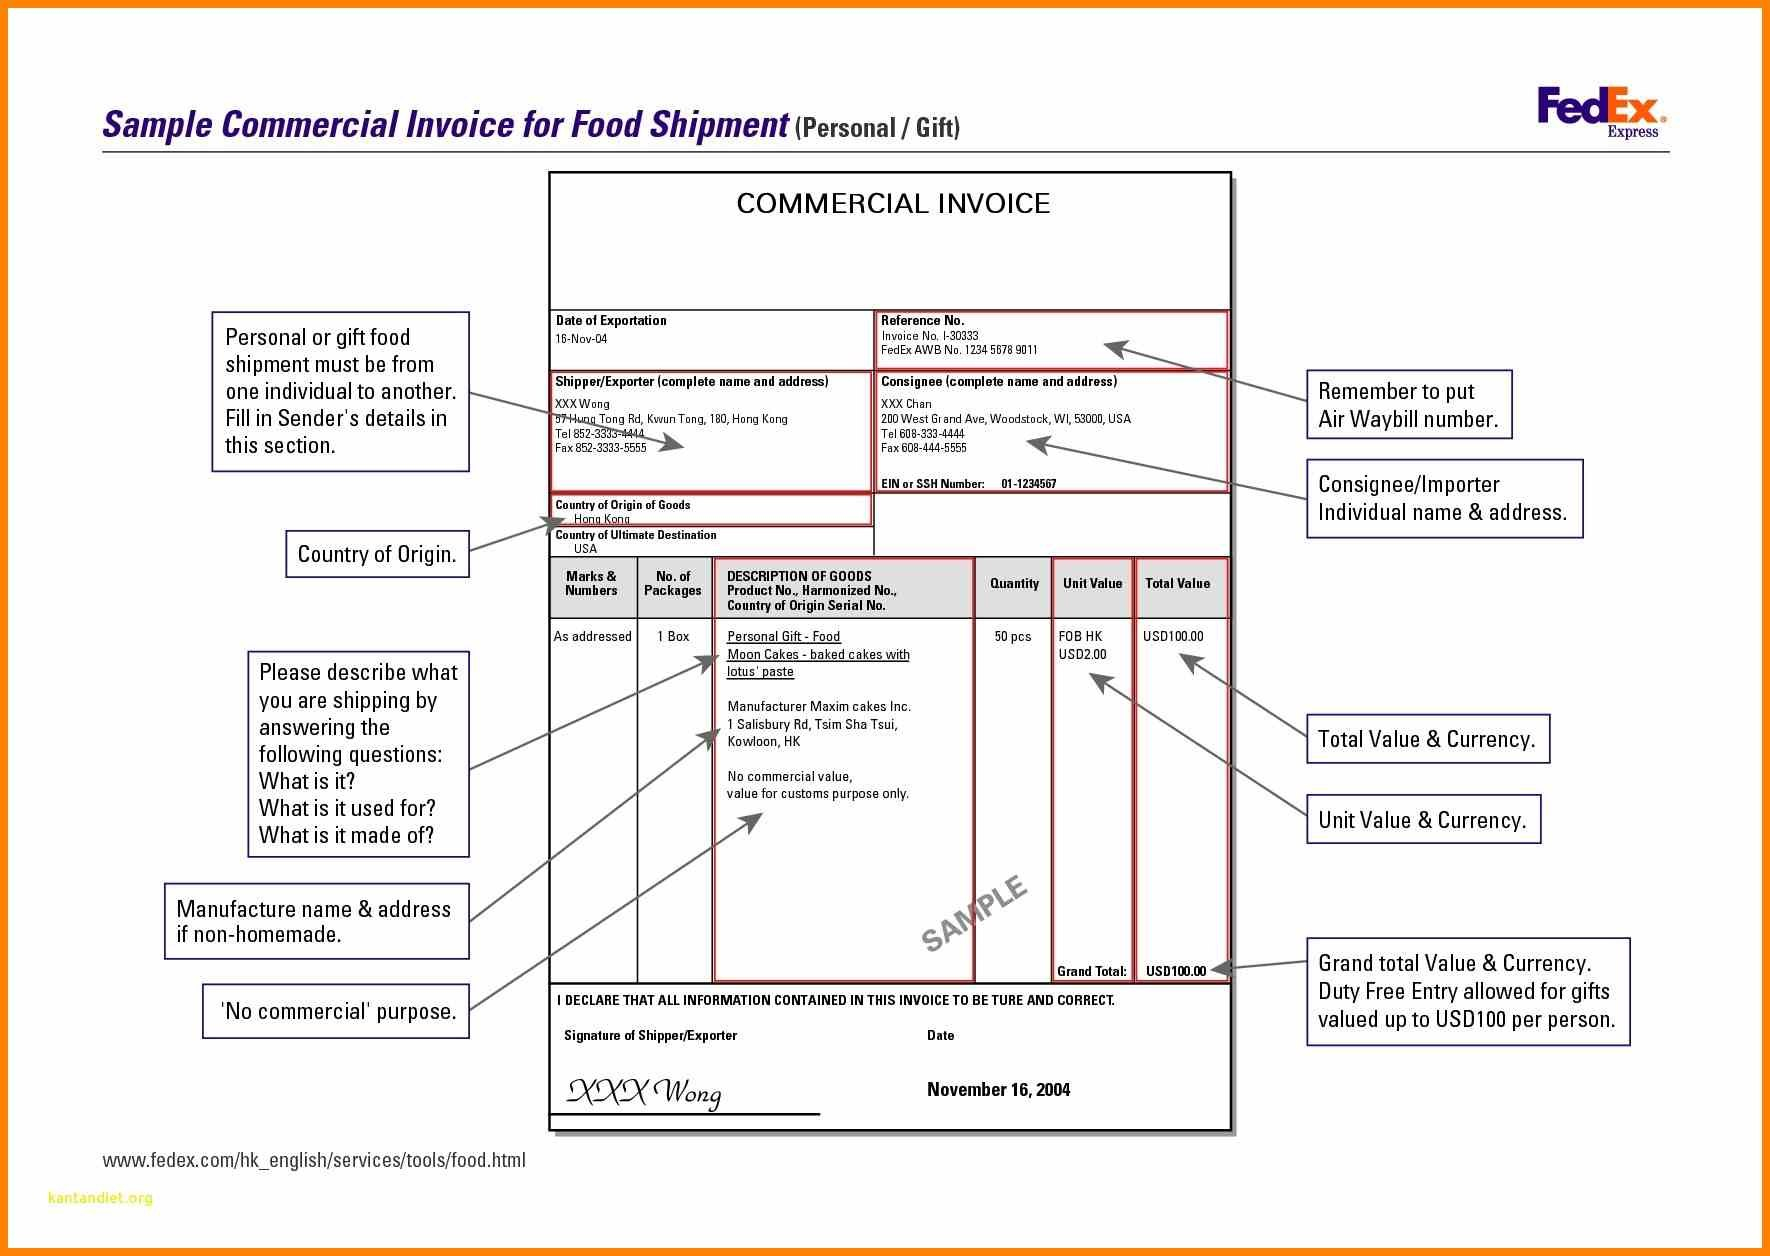 Fedex Commercial Invoice Sample Commercialpro Forma Form Canada In Proforma Invoice Template Fedex